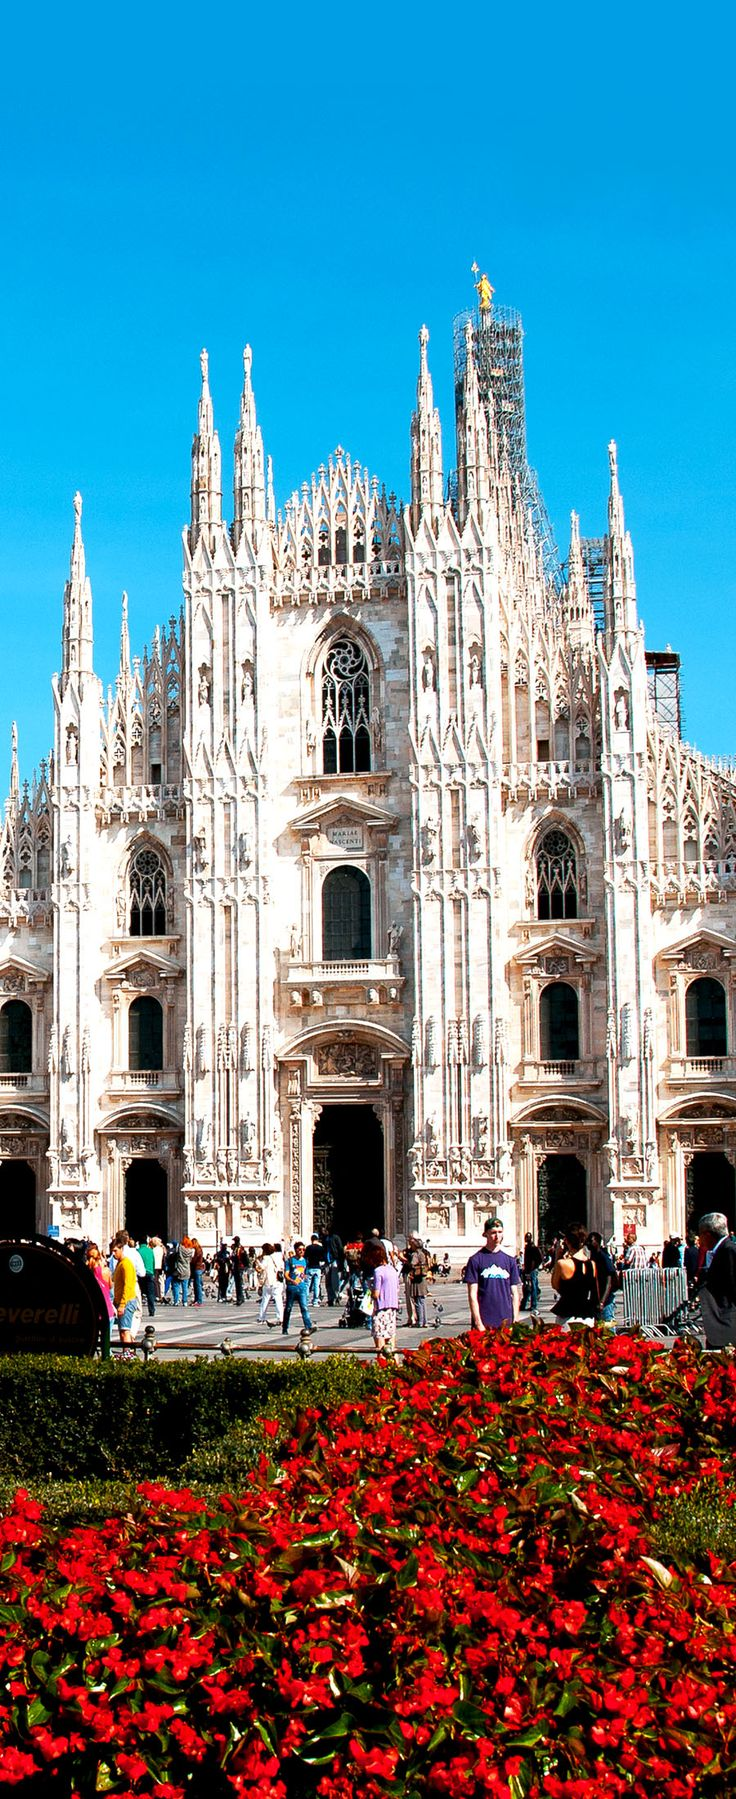 Milan Famous Cathedral (Duomo), Italy | Amazing Photography Of Cities and Famous Landmarks From Around The World. love fashion for men? Follow http://everythingforguys.co.uk